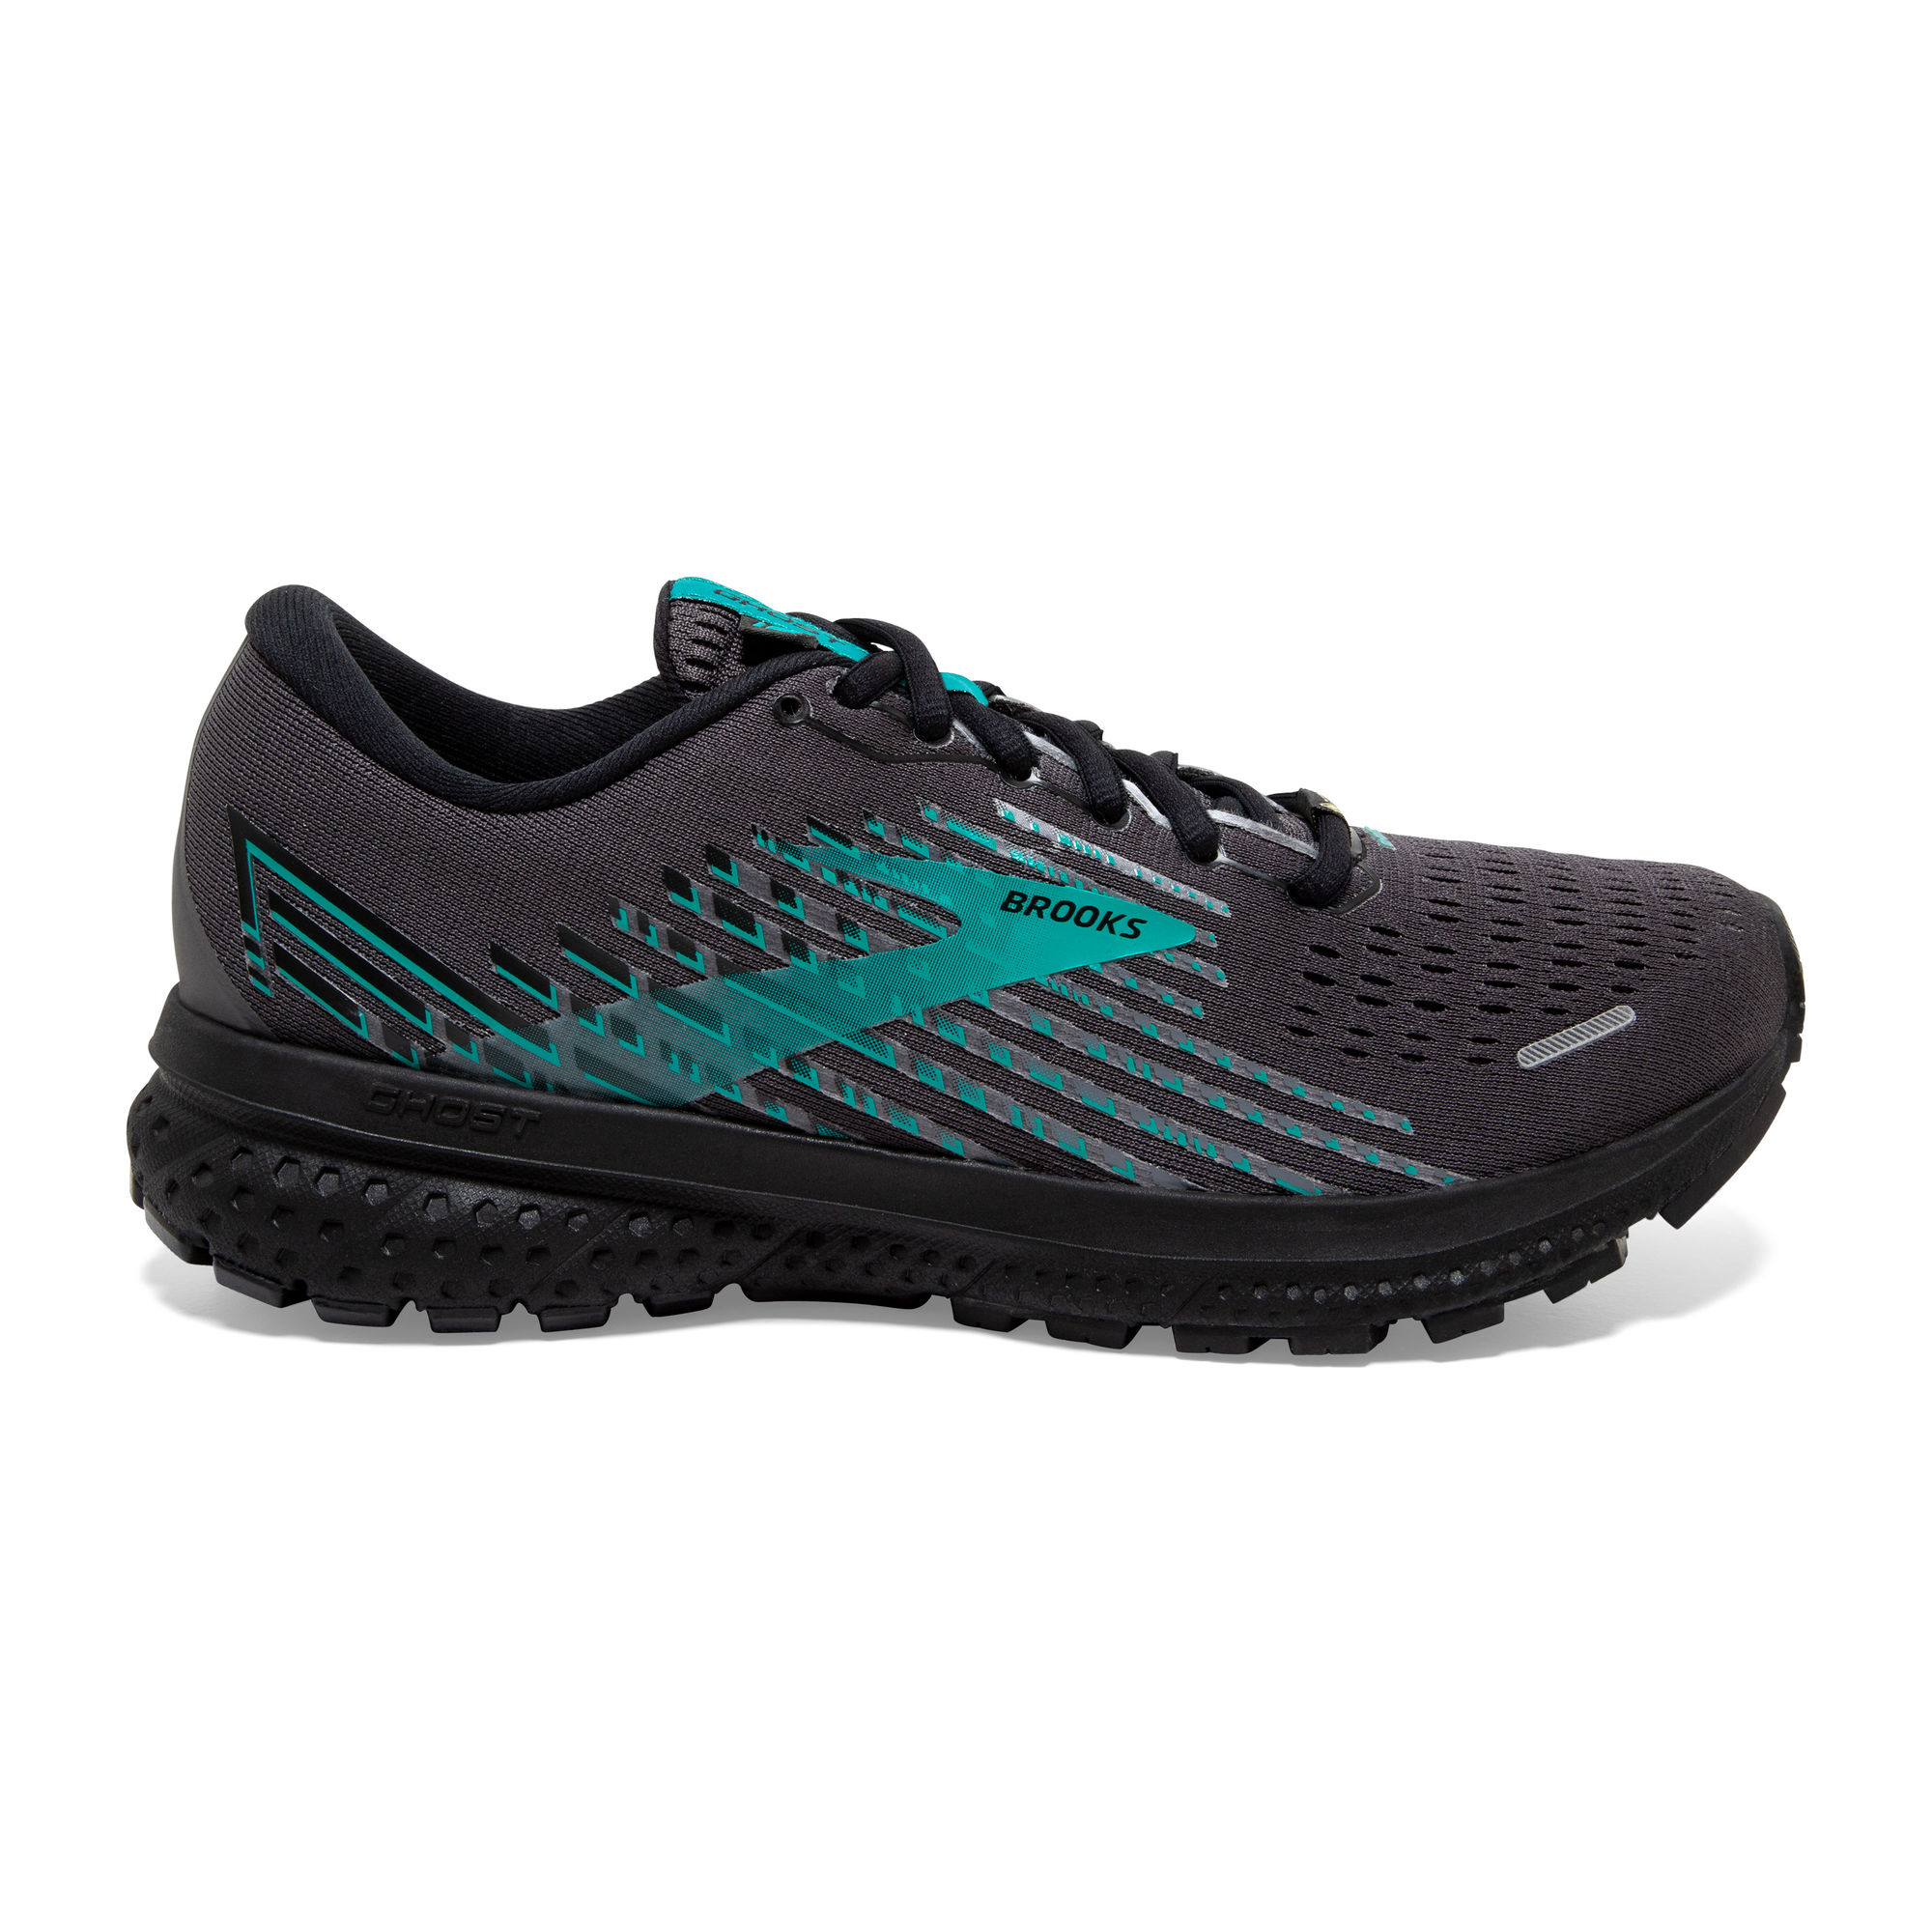 Brooks Lady Ghost 13 GTX (Black Black Peacock)